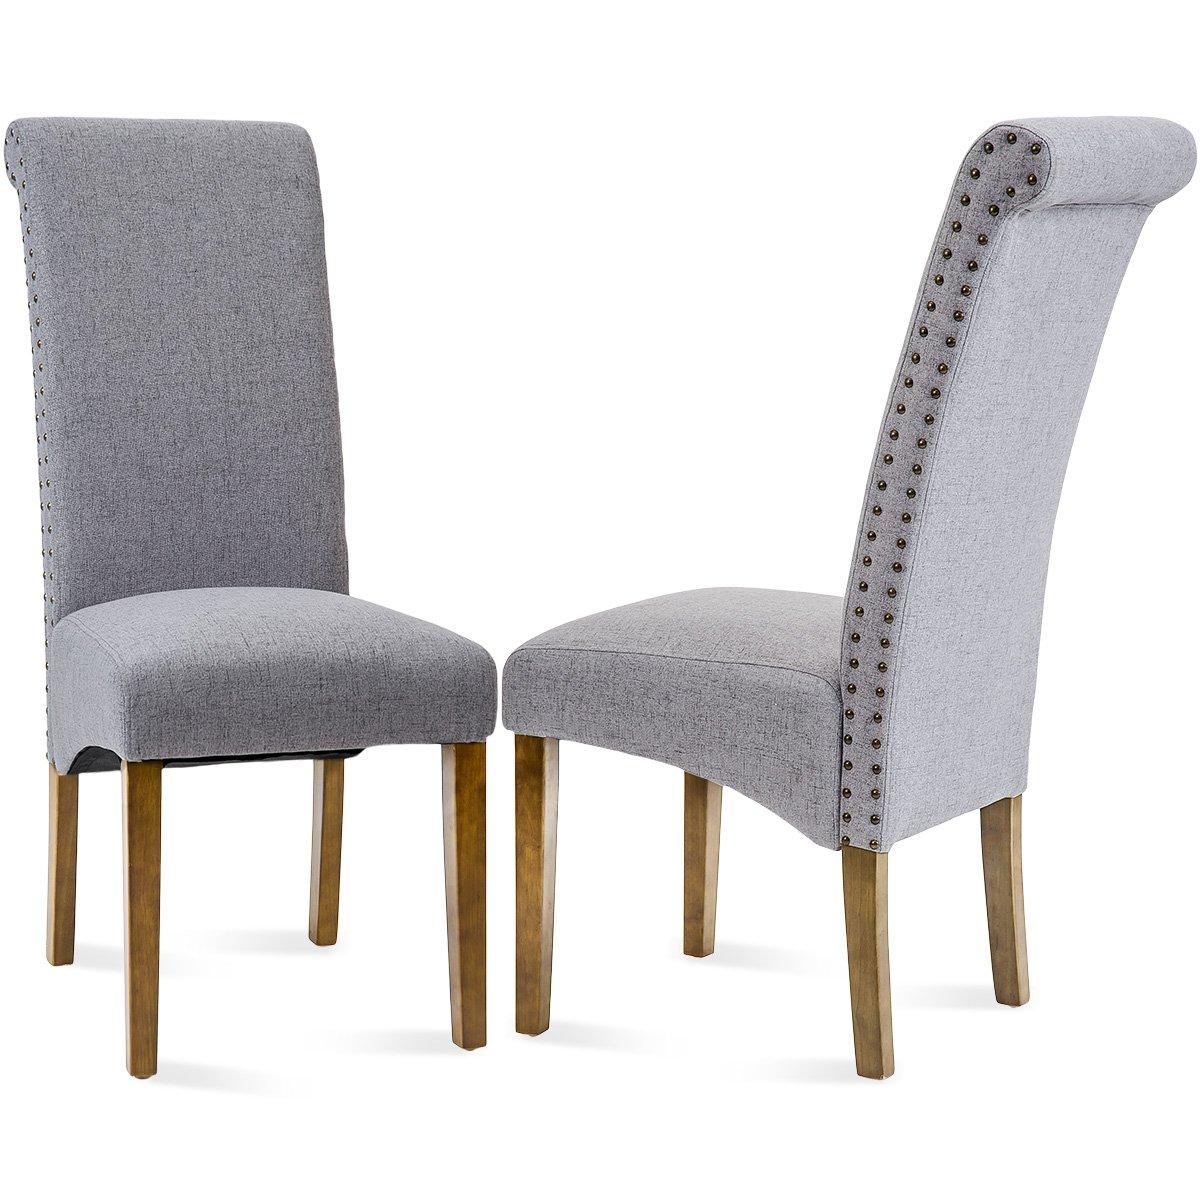 Merax Dining Chairs Set of 2 Fabric Padded Side Chair with Solid Wood Legs, Nailed Trim(Grey) by Merax (Image #1)